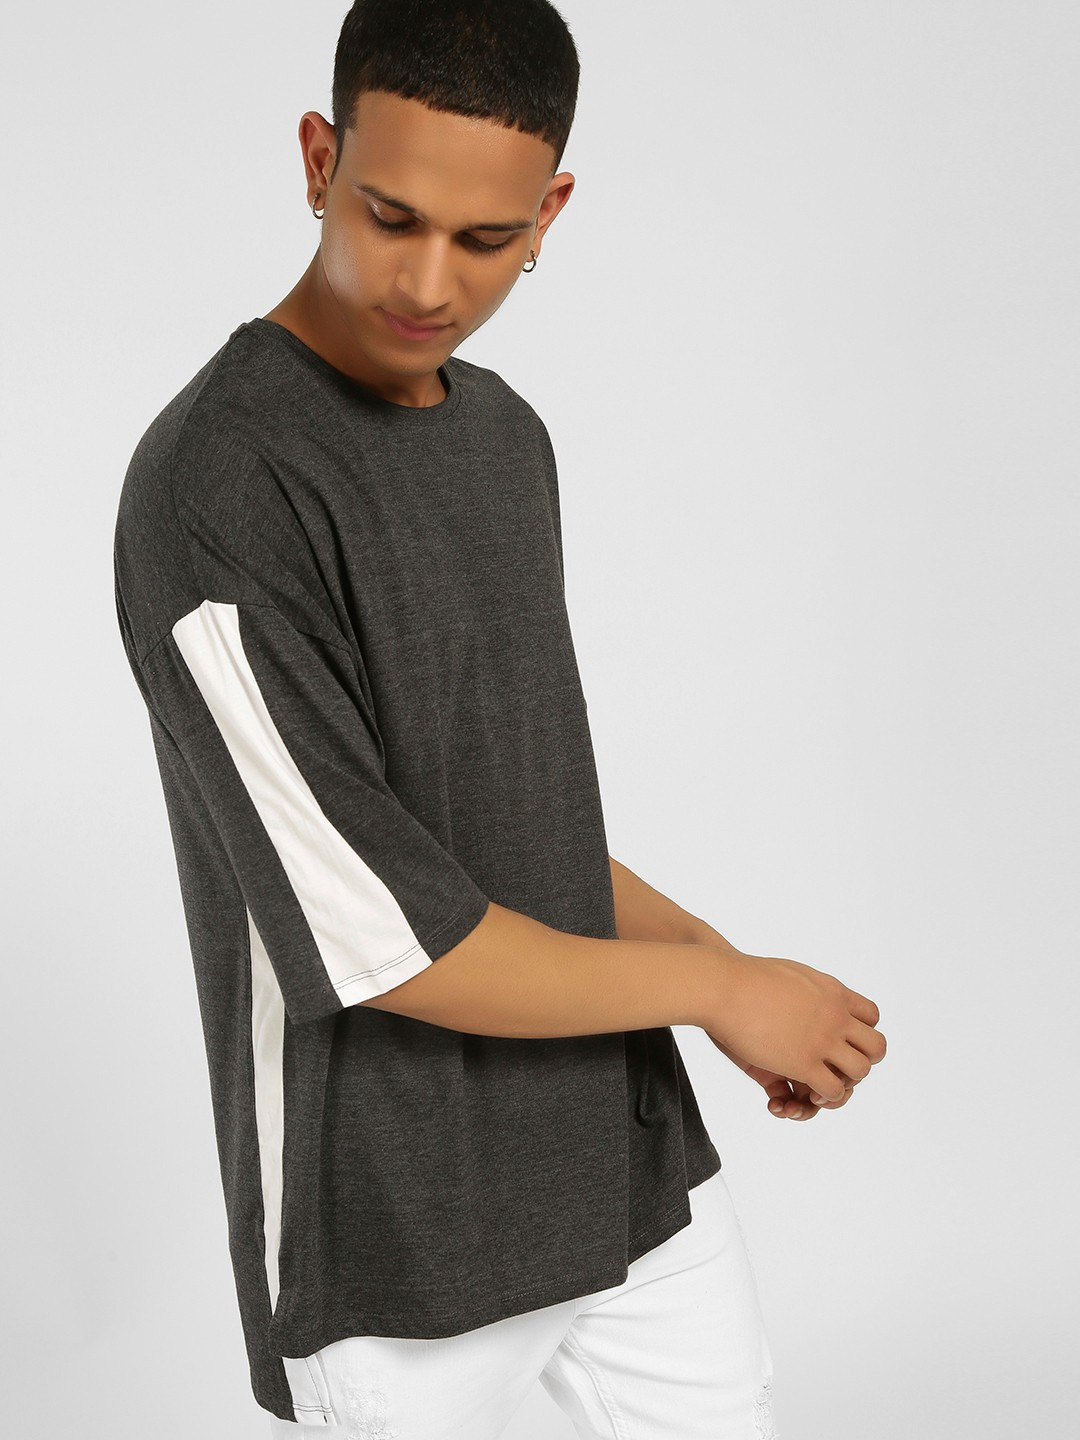 SKULT By Shahid Kapoor Grey Contrast Side Tape T-Shirt 1